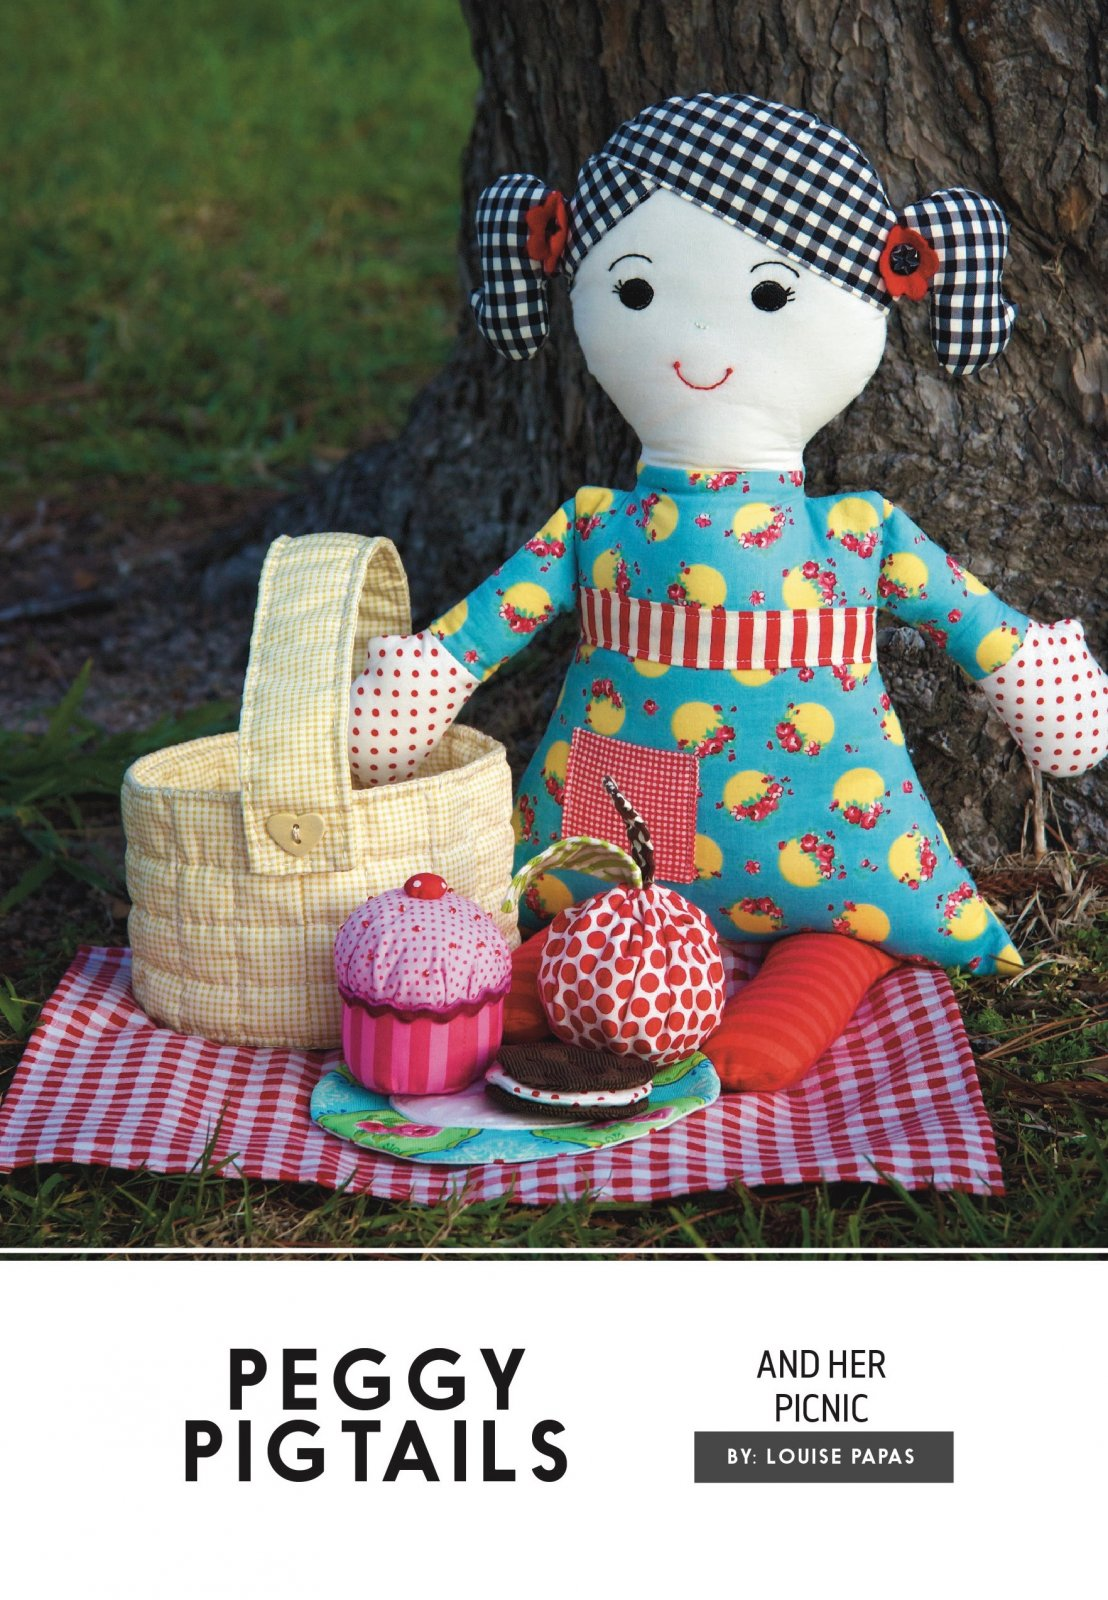 Peggy Pigtails Soft Toy Pattern by Louise Papas